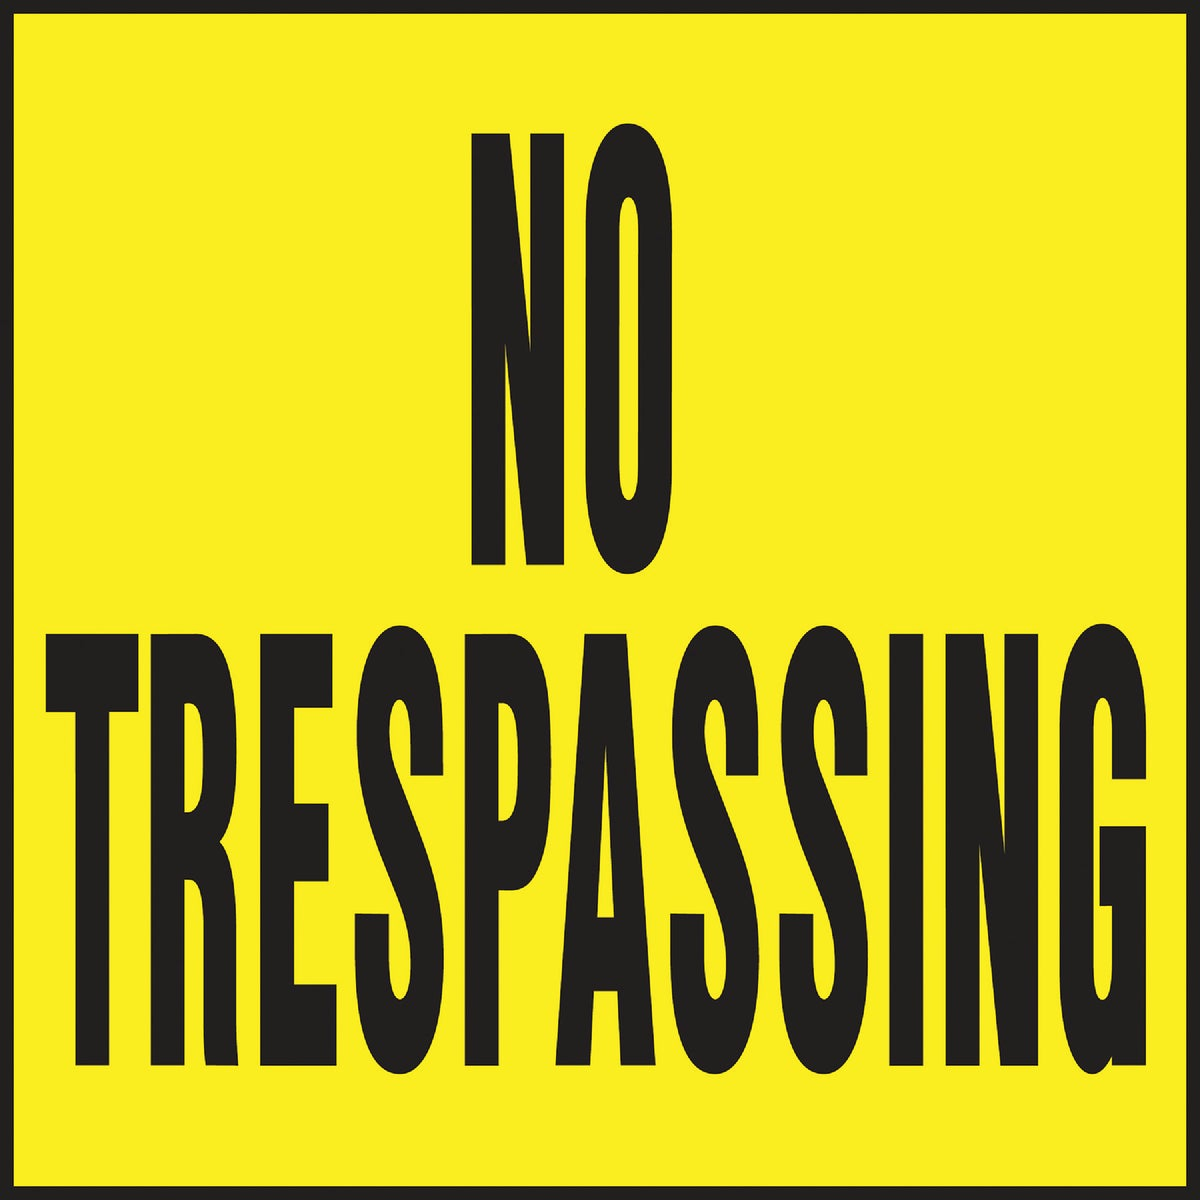 11X11 NO TRESPASSNG SIGN - YP-7 by Hy Ko Prods Co